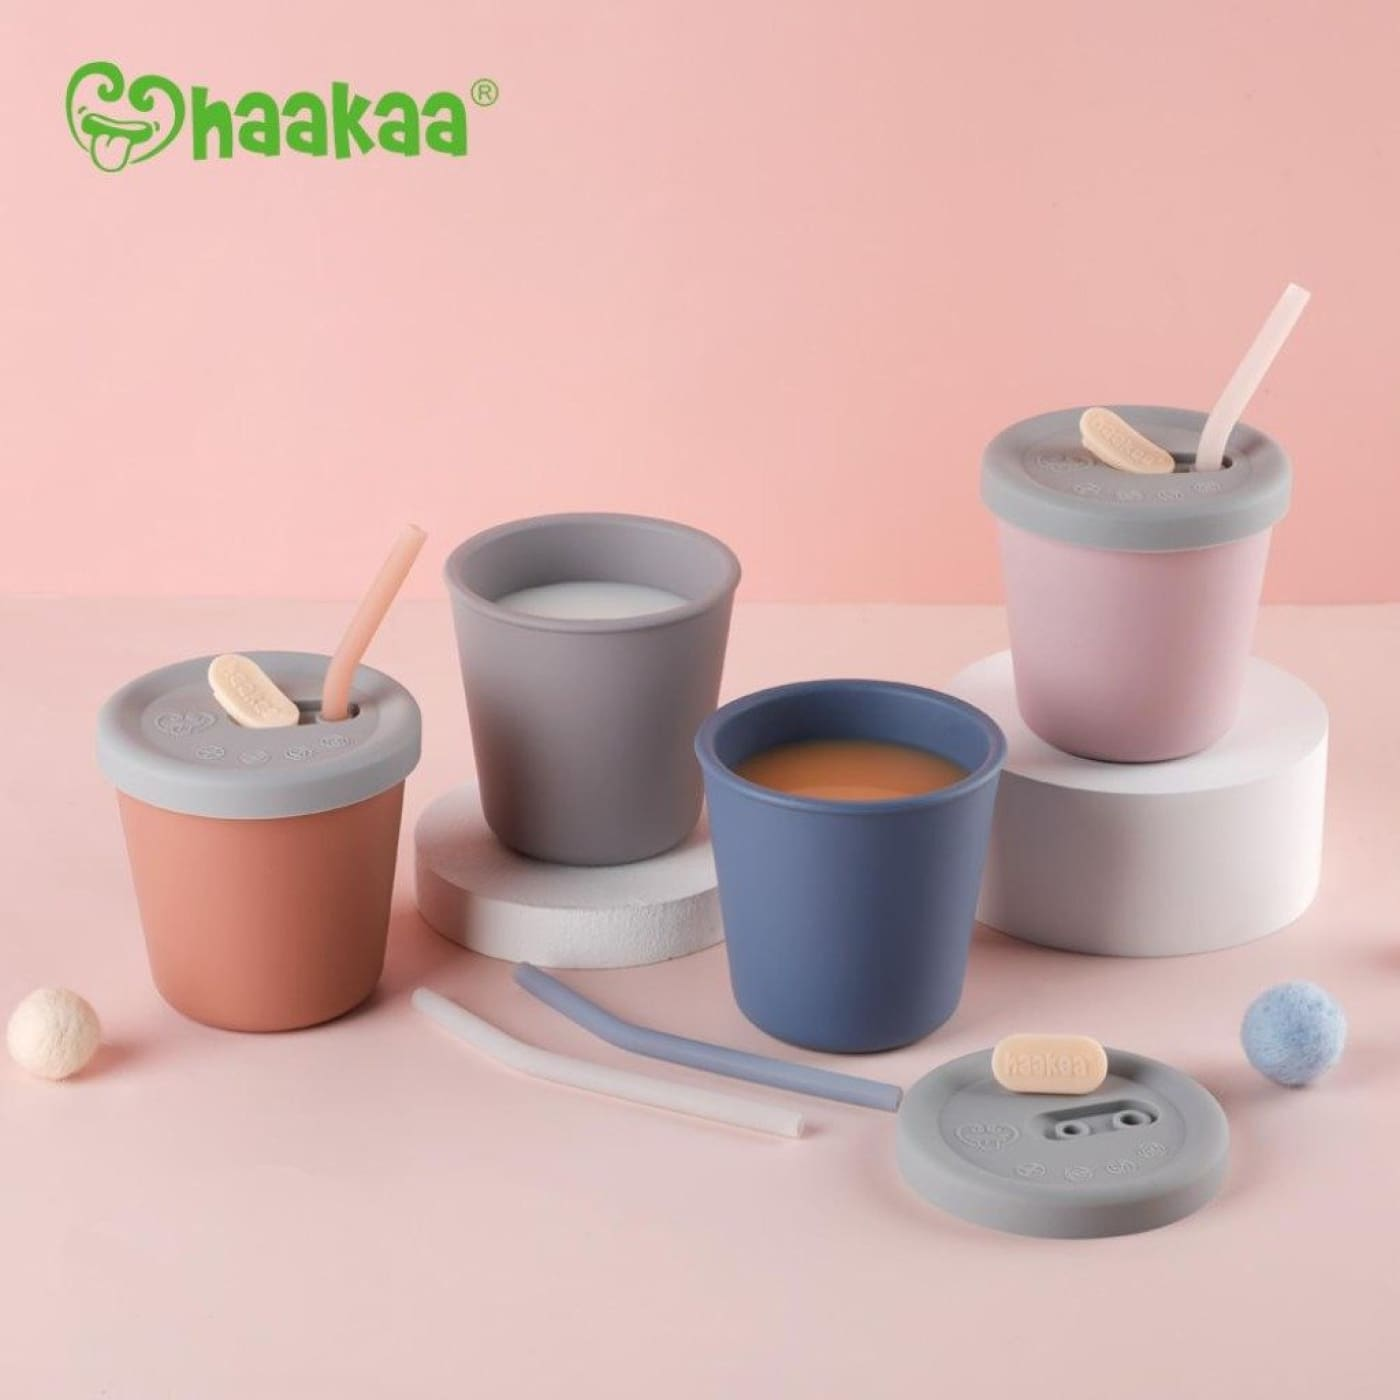 Haakaa Silicone Sippy Straw Cup - Blush - Blush - NURSING & FEEDING - CUPS/DRINK BOTTLES